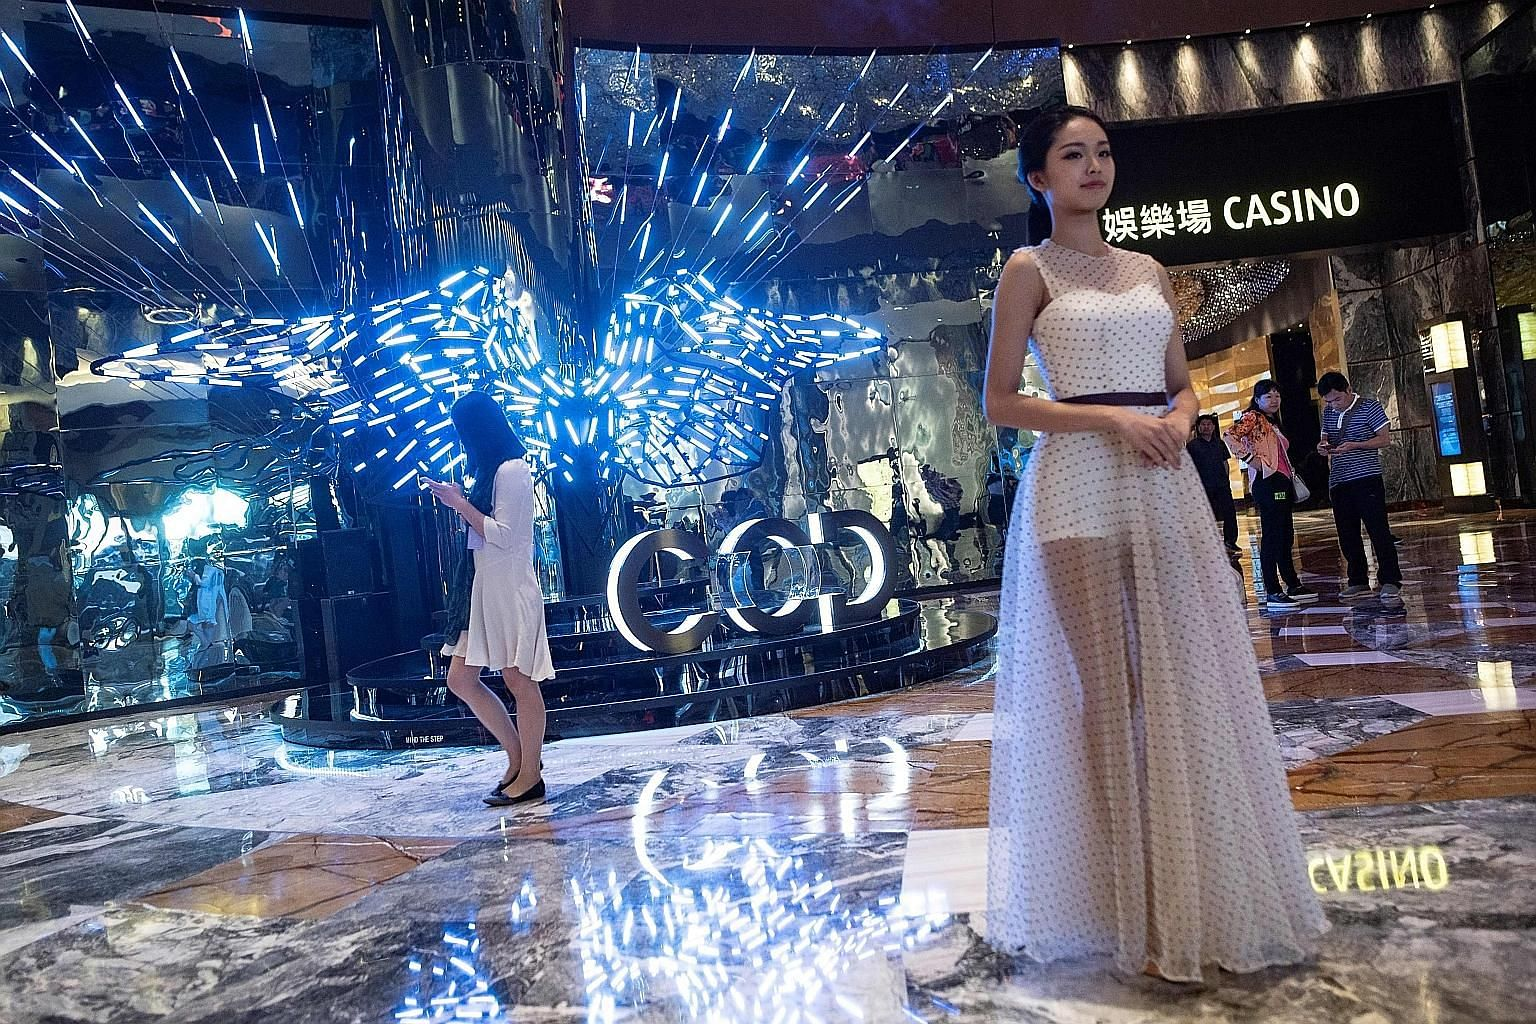 A receptionist standing ready last Friday to greet visitors to the casino section of Morpheus resort's City of Dreams in Macau. The hotel, owned by Melco Resorts & Entertainment, opened last week.